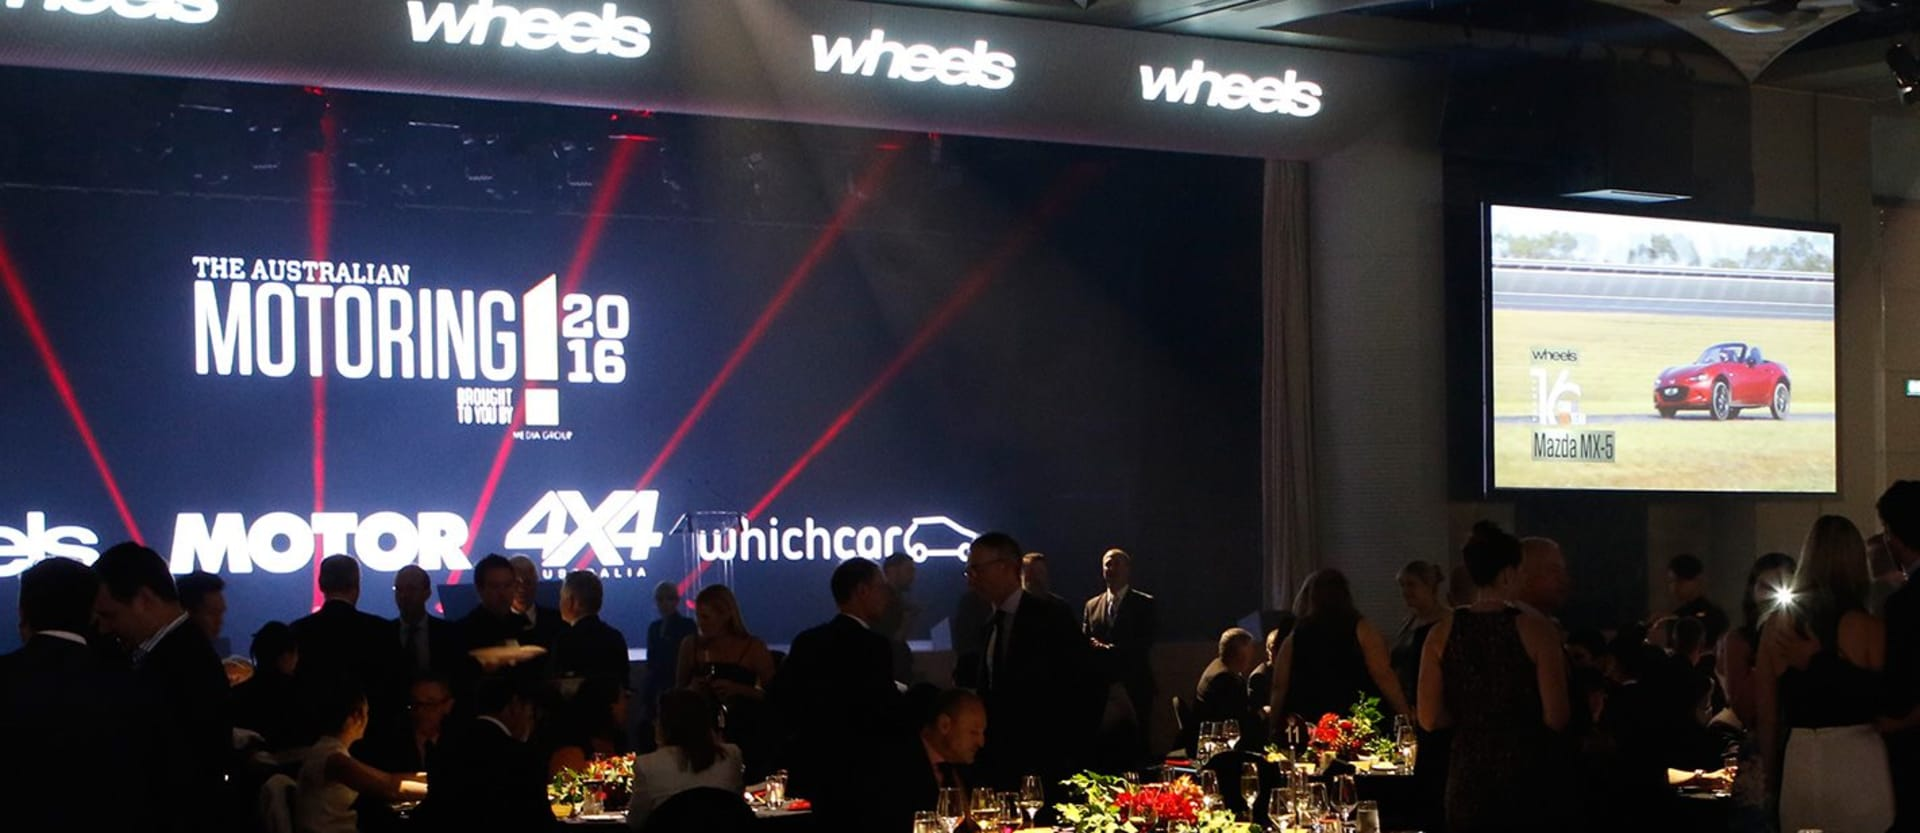 Wheels Car of the Year 2016: Awards night video